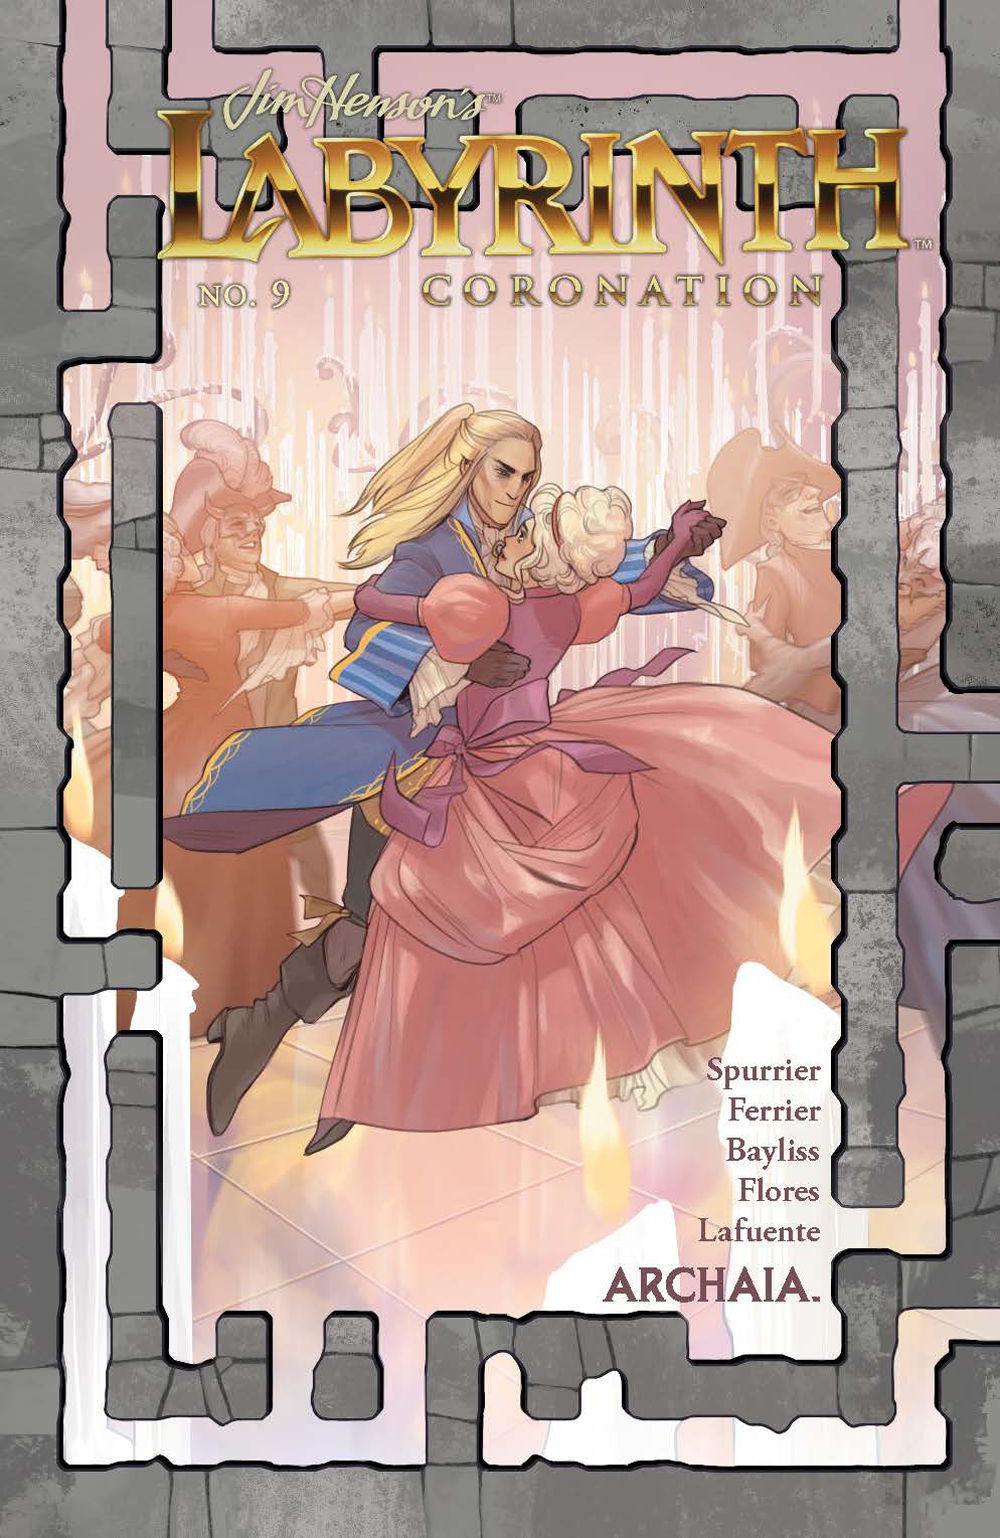 JIM HENSON LABYRINTH CORONATION #9 (OF 12)